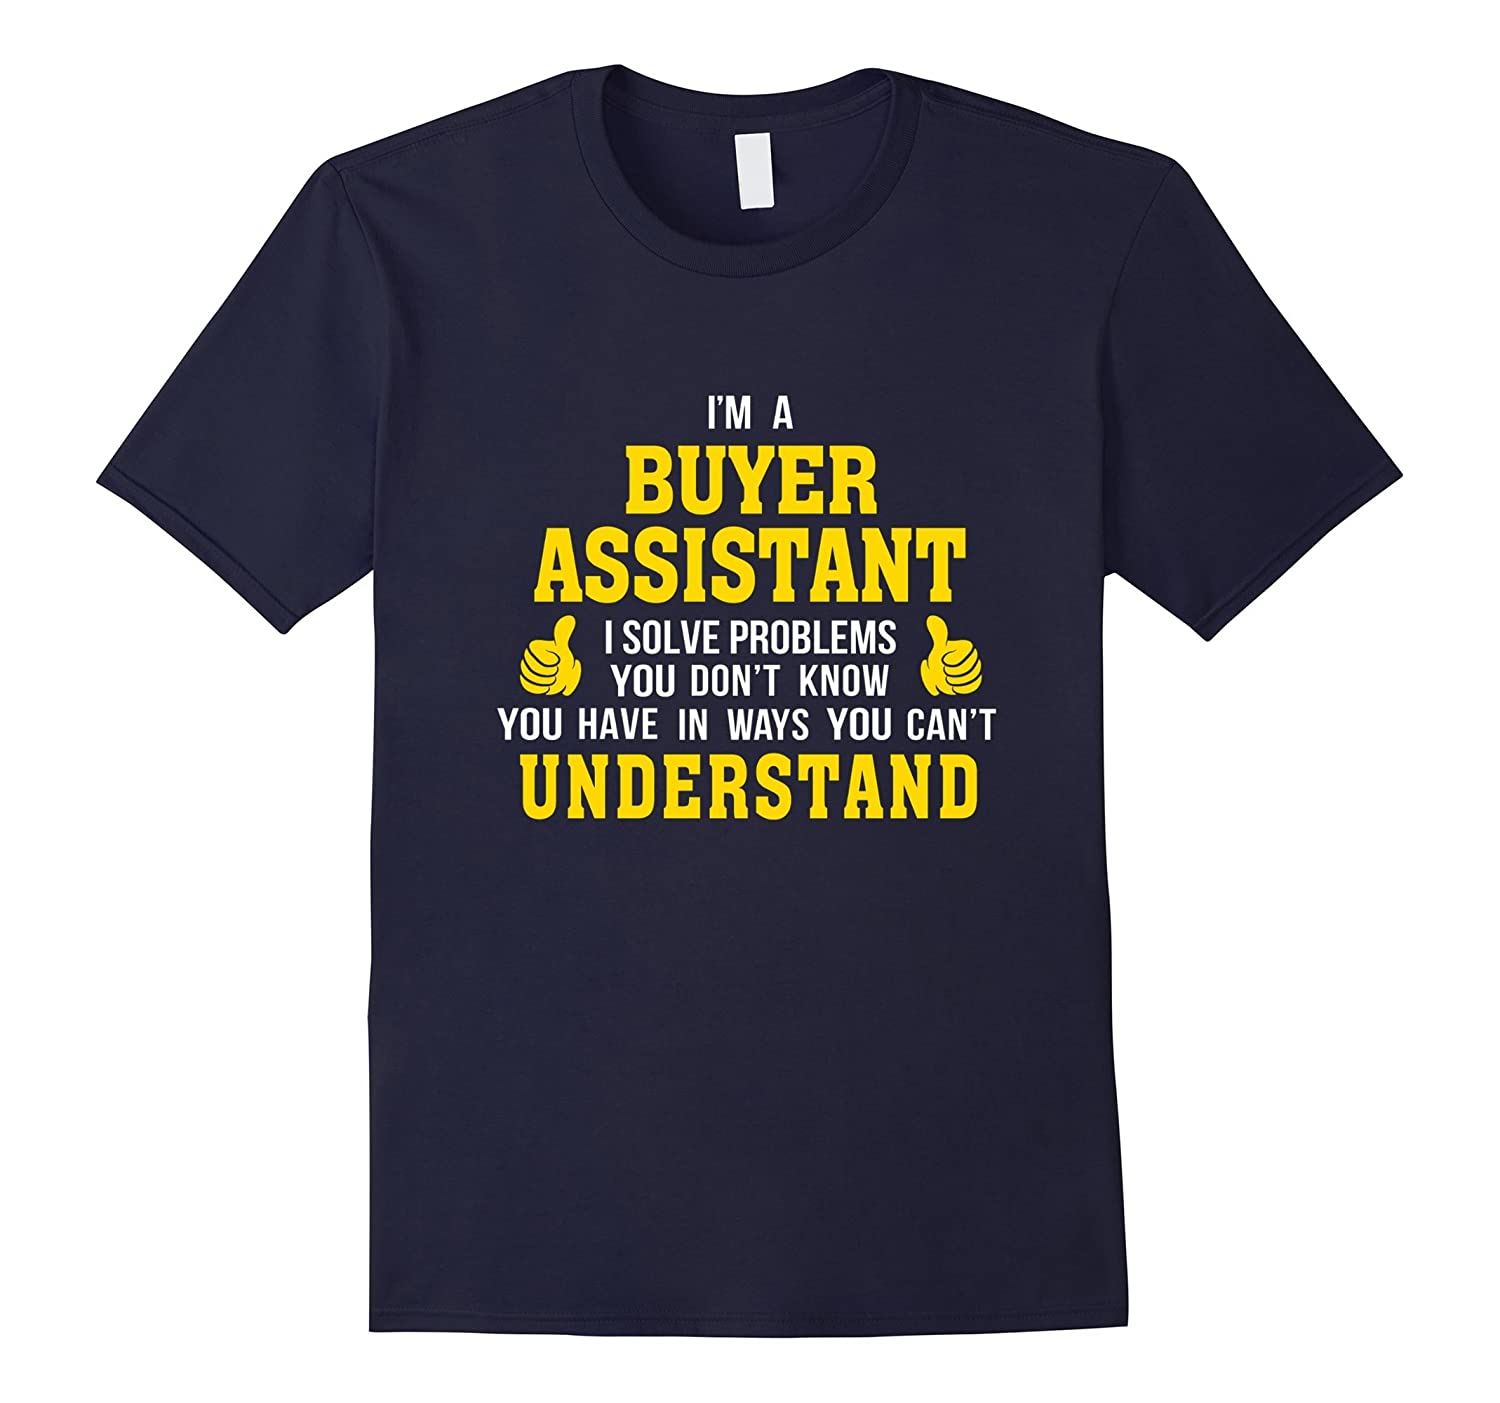 Buyer Assistant solves problems in ways understand-TD